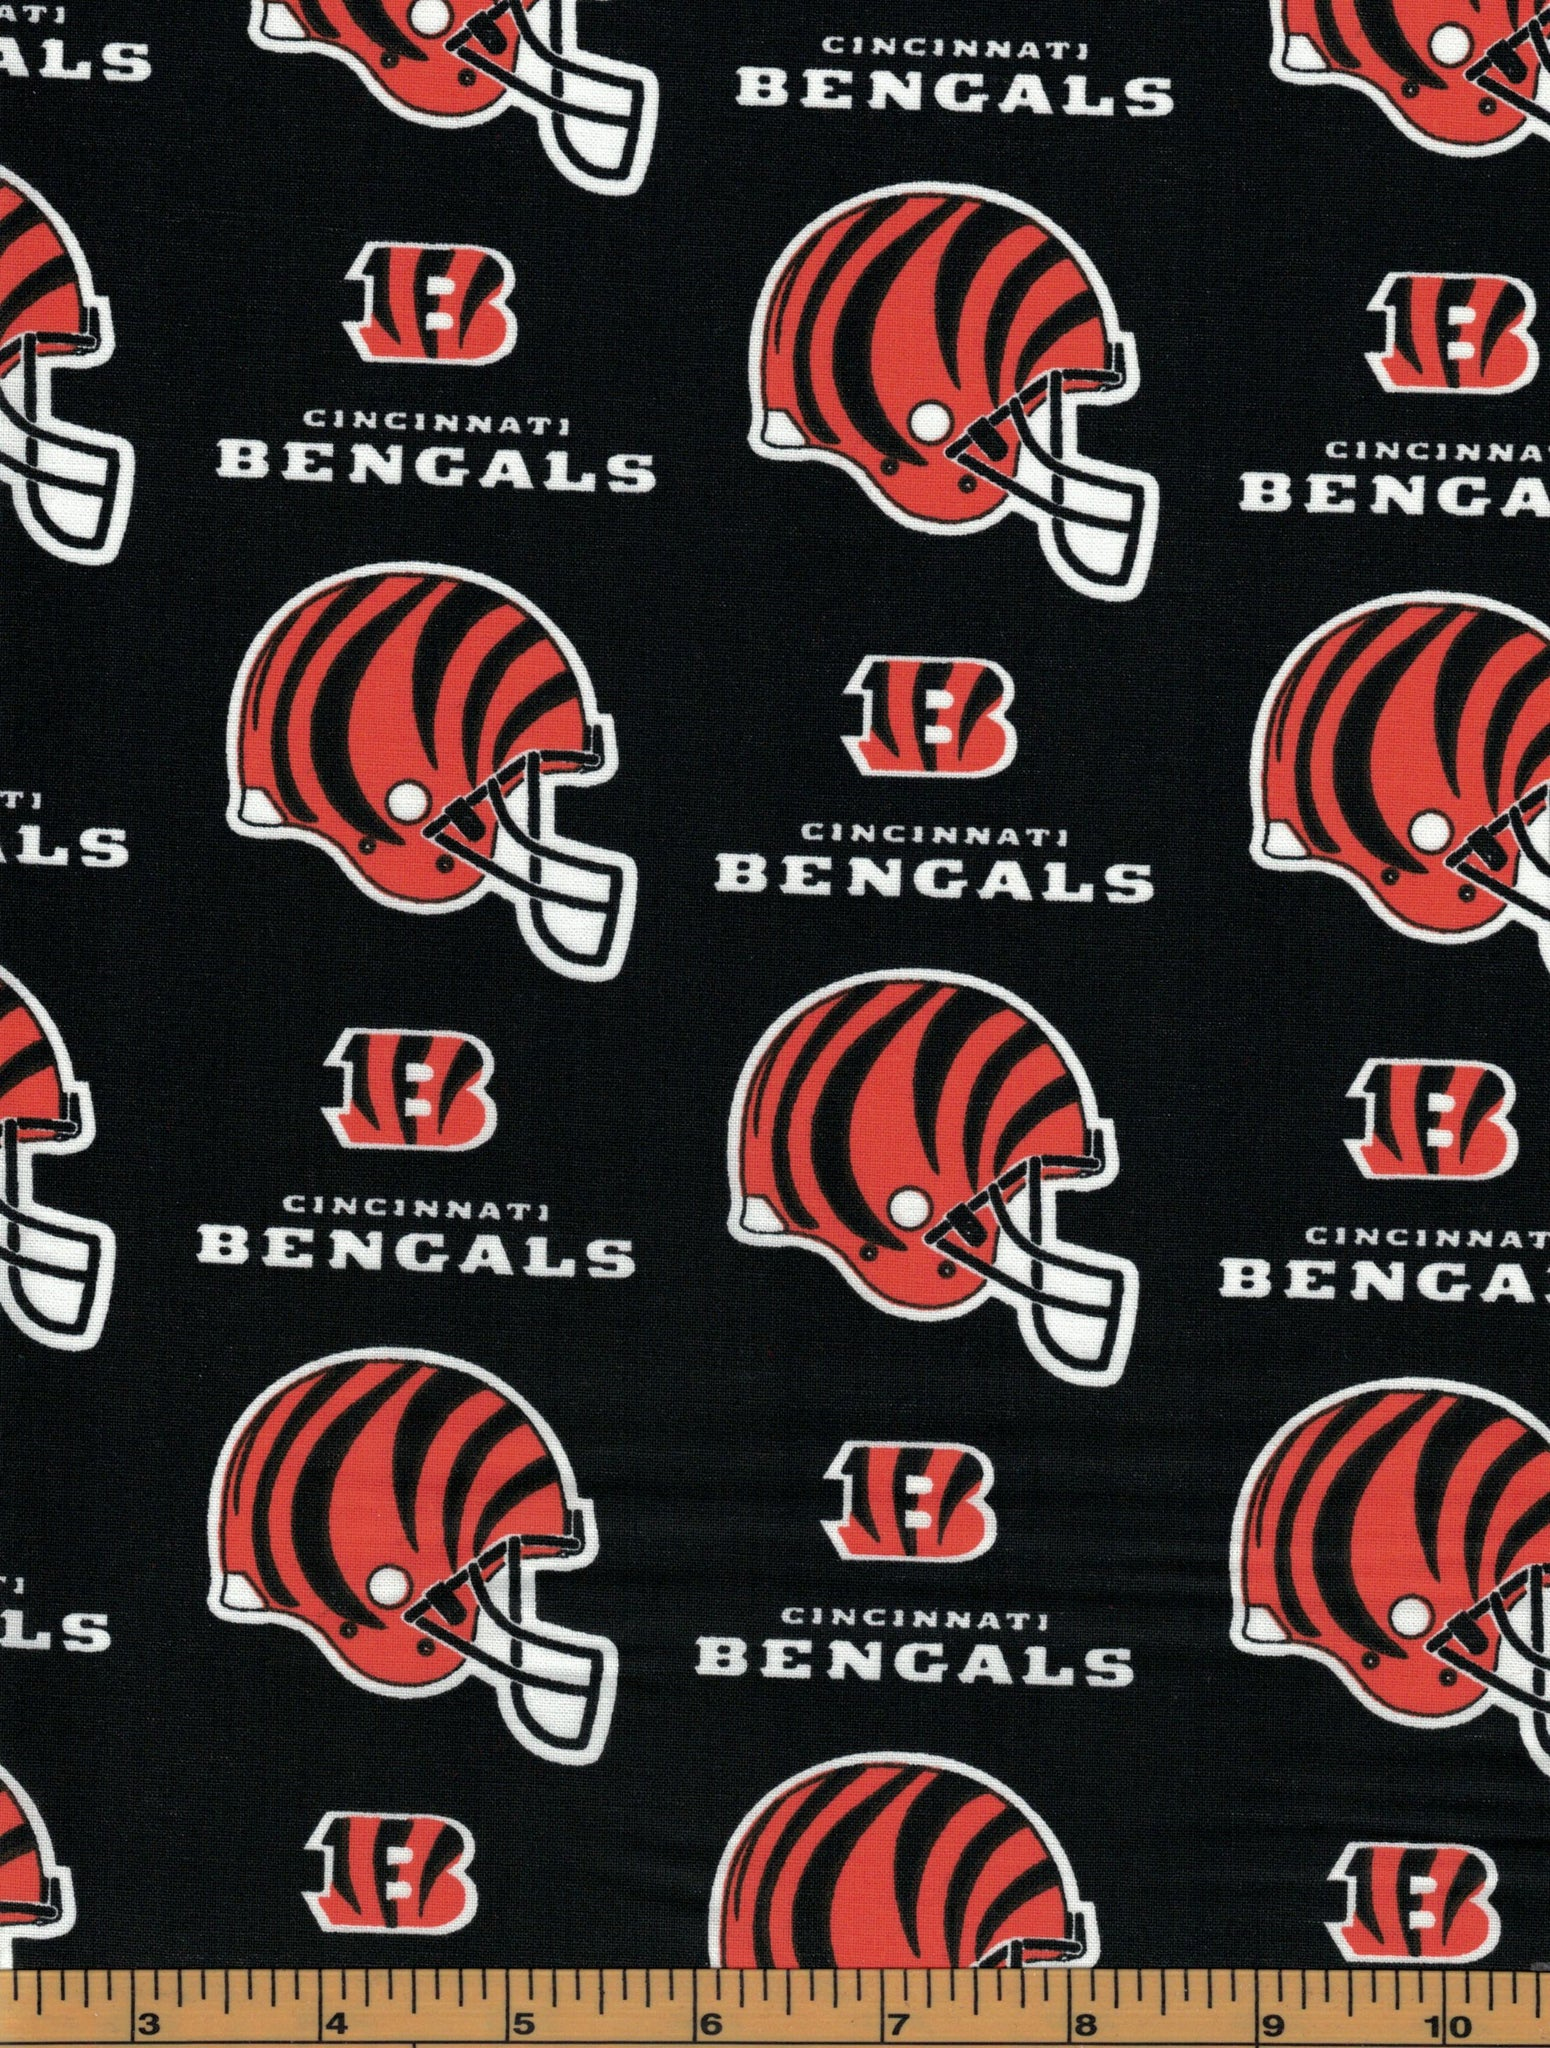 Cincinnati Bengals Football Fabric- NFL -100% Cotton Fabric - by Fabric Traditions